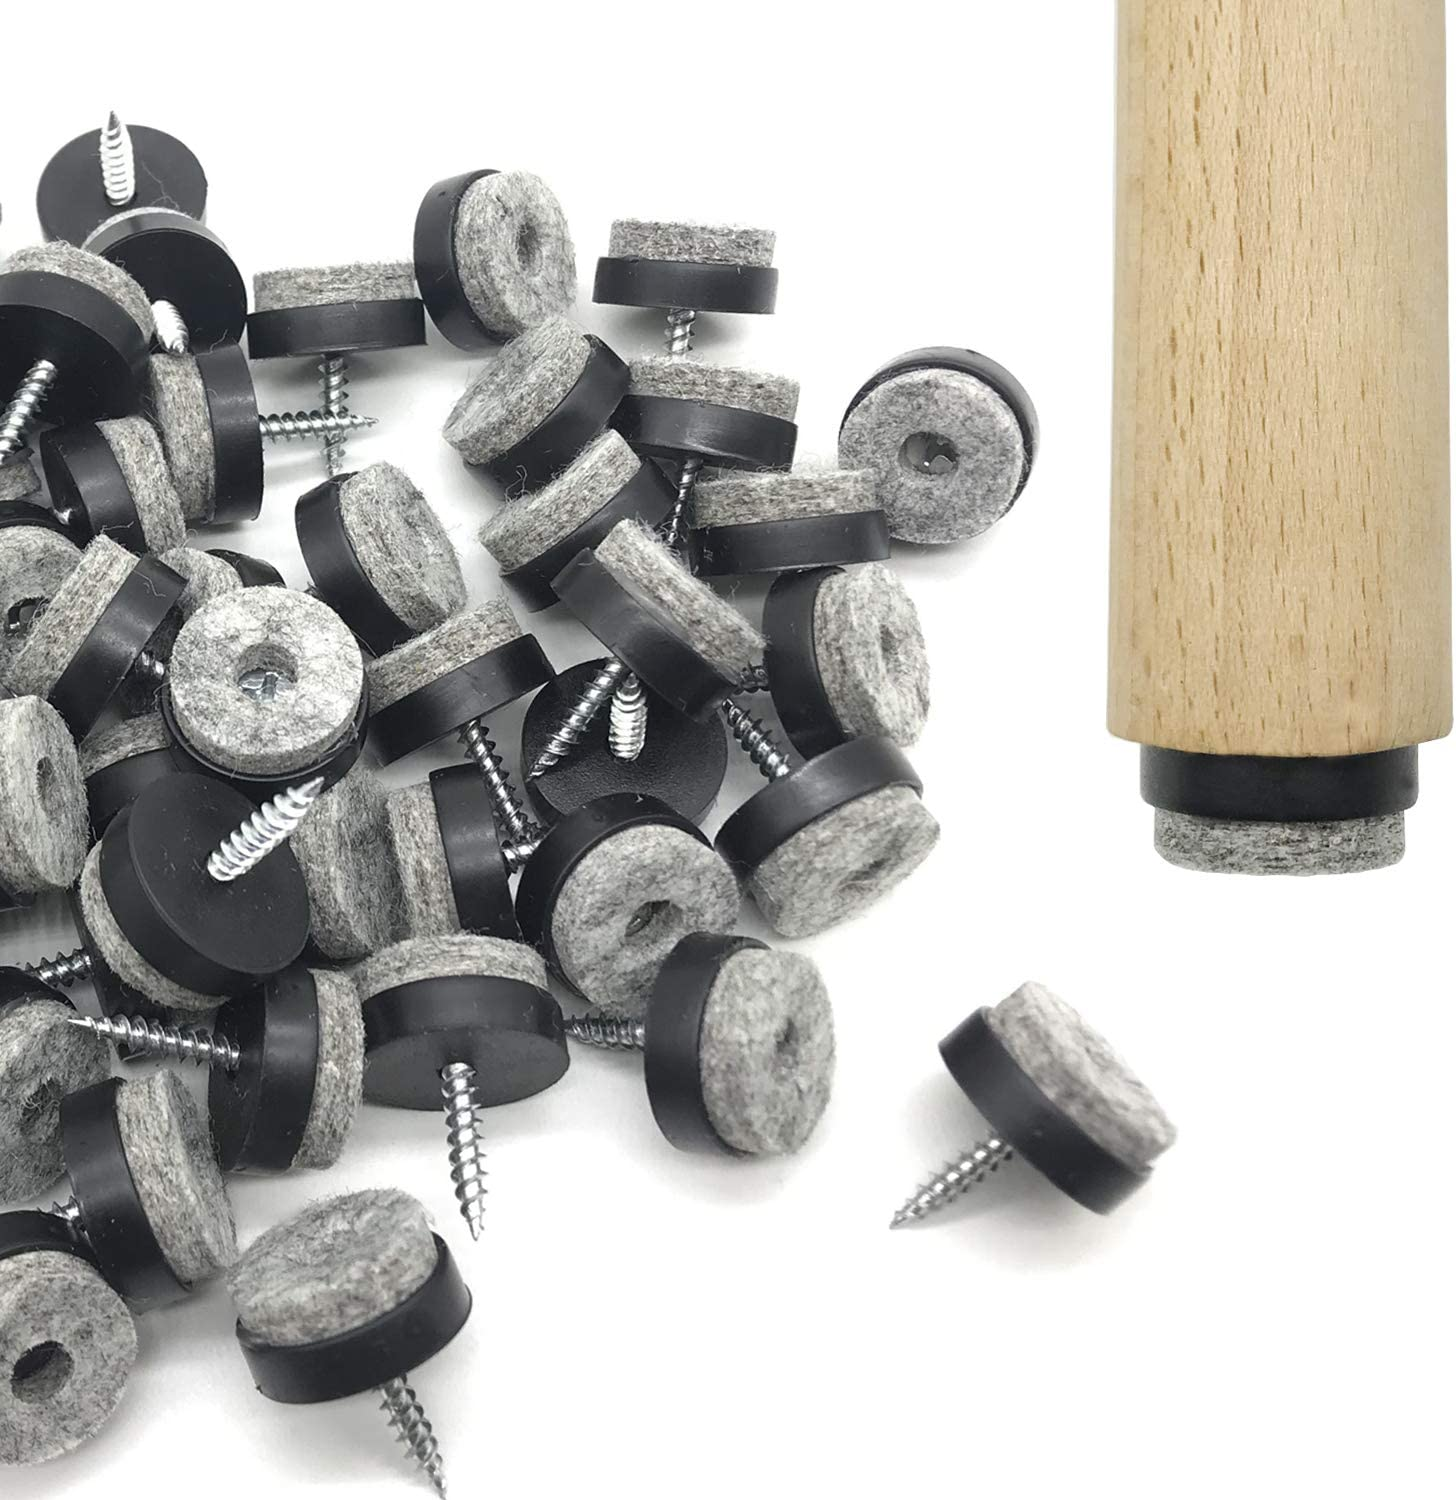 Screw-in Felt Pads - 60pcs 1 Inch Black Furniture Chair Table Glides Pad Floor Protectors for Wooden Legs Feets